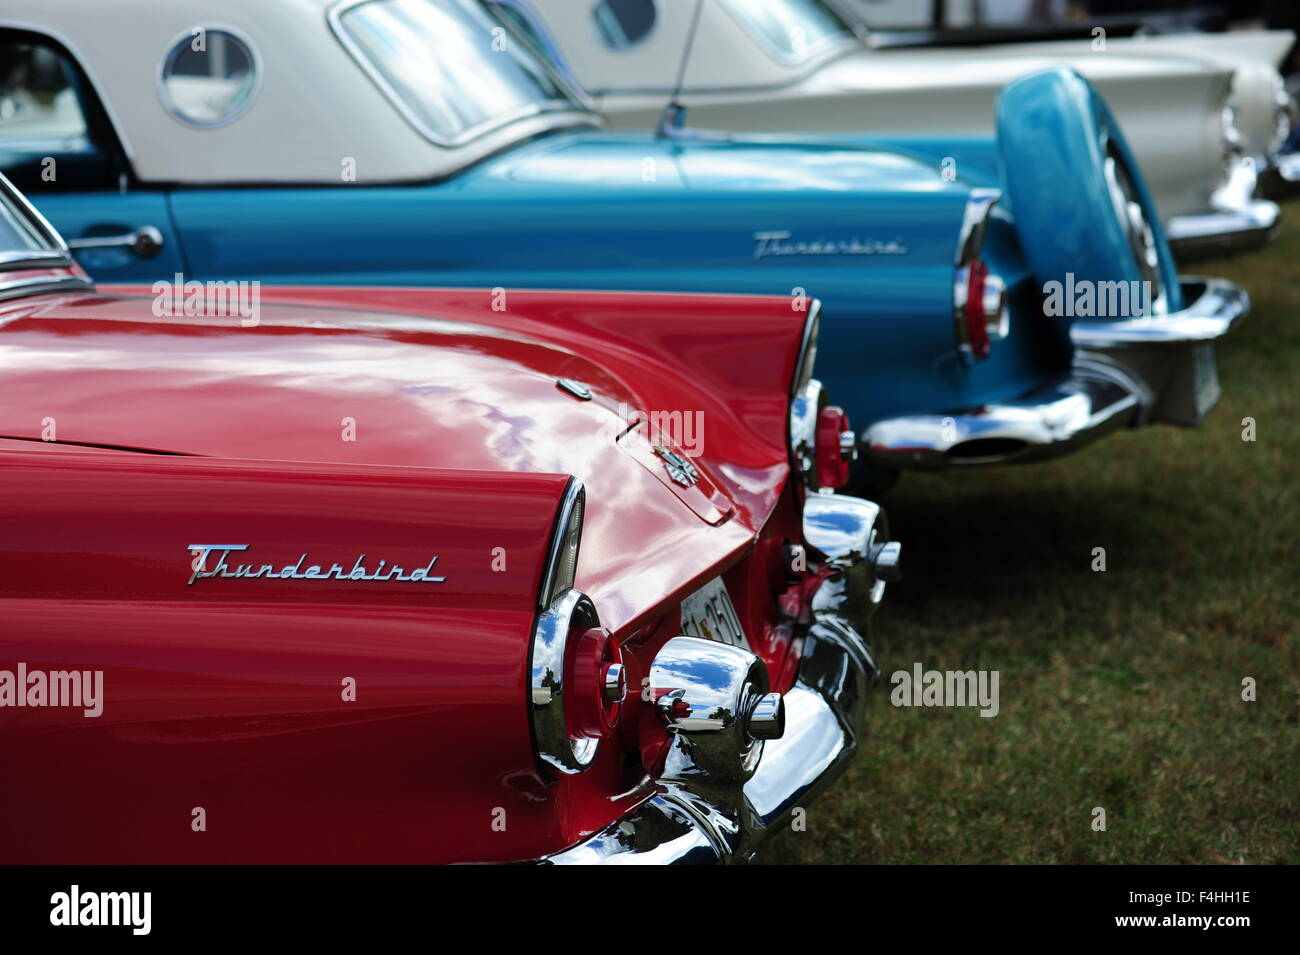 Classic American 1950s era Ford Thunderbirds cars car at an antique ...